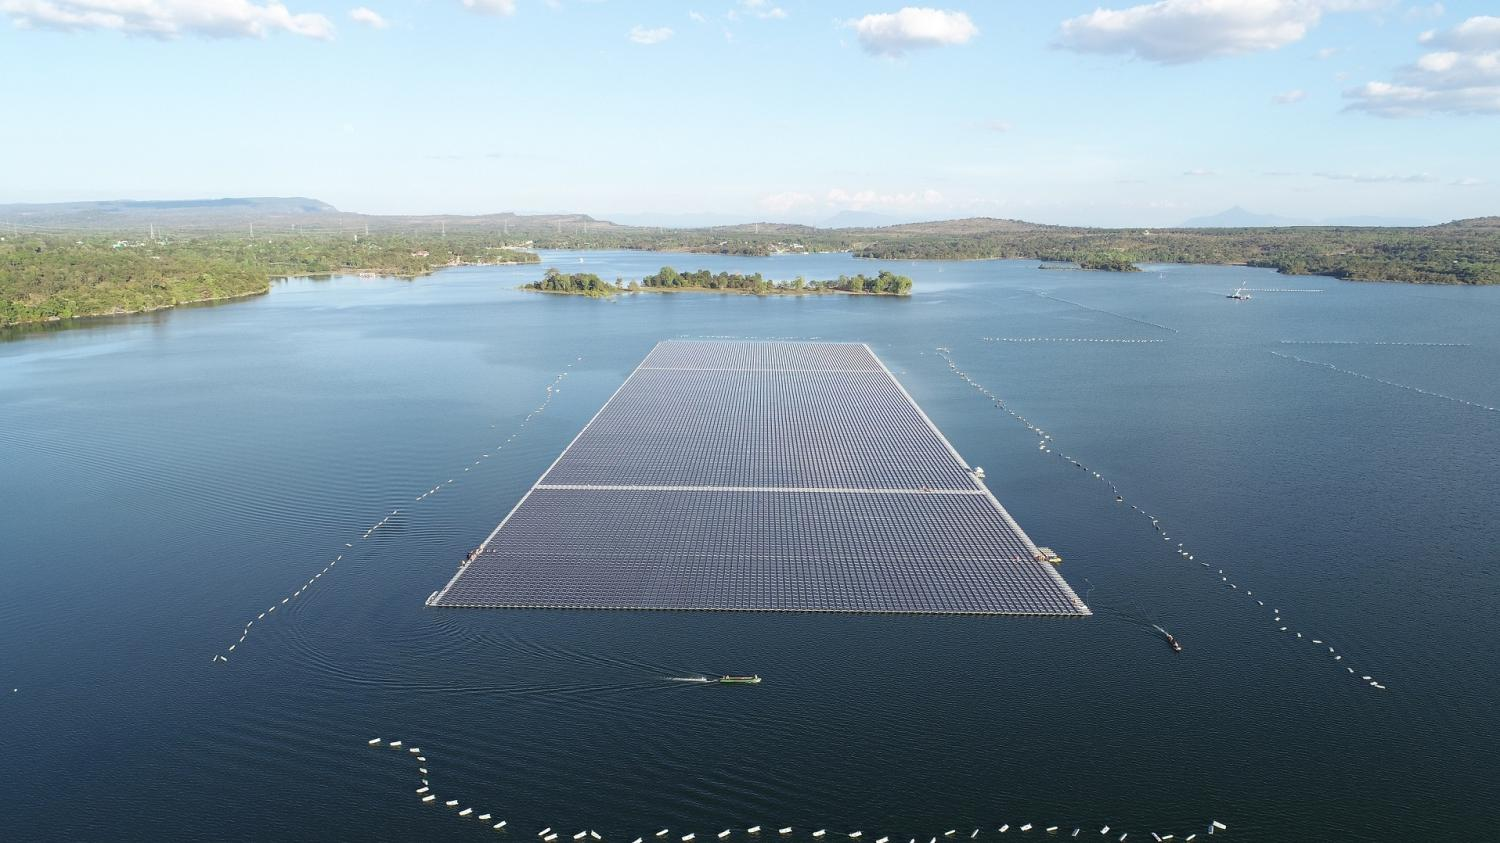 A floating solar power installation with a capacity of 45 megawatts in the reservoir of the Sirindhorn Dam in Ubon Ratchathani will be the world's largest when completed in June, according to the Electricity Generating Authority of Thailand. Photo Courtesy of EGAT